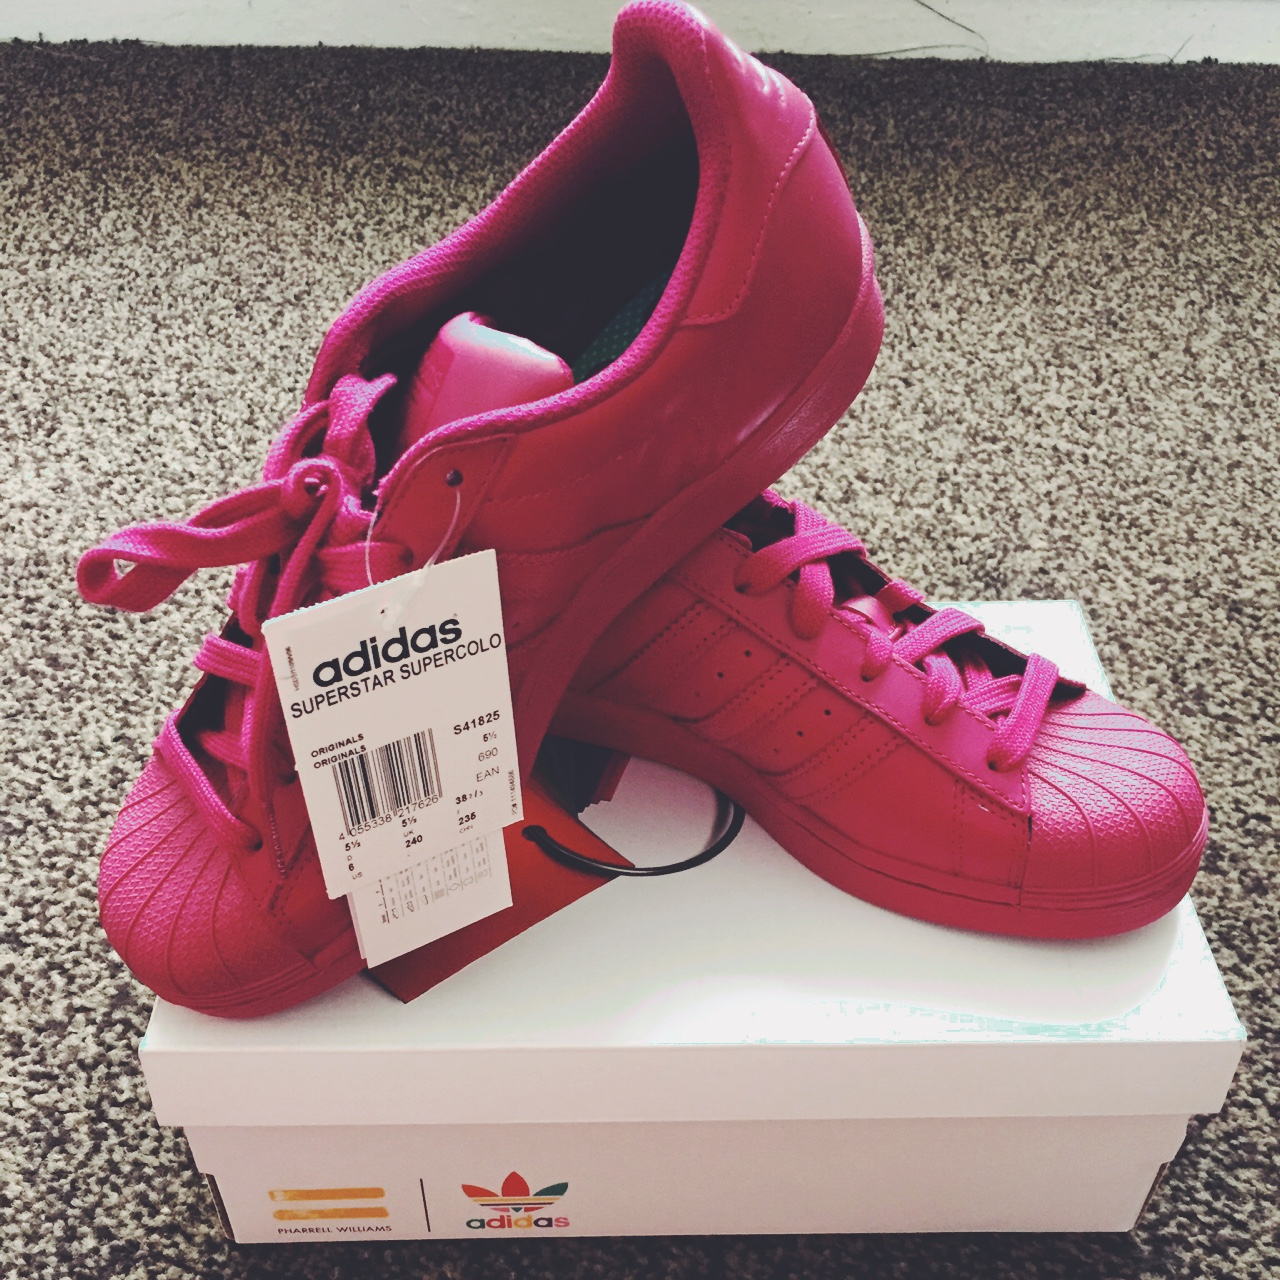 a876fb1638ae7 Brand new Adidas superstars from pharrell williams UK size - Depop